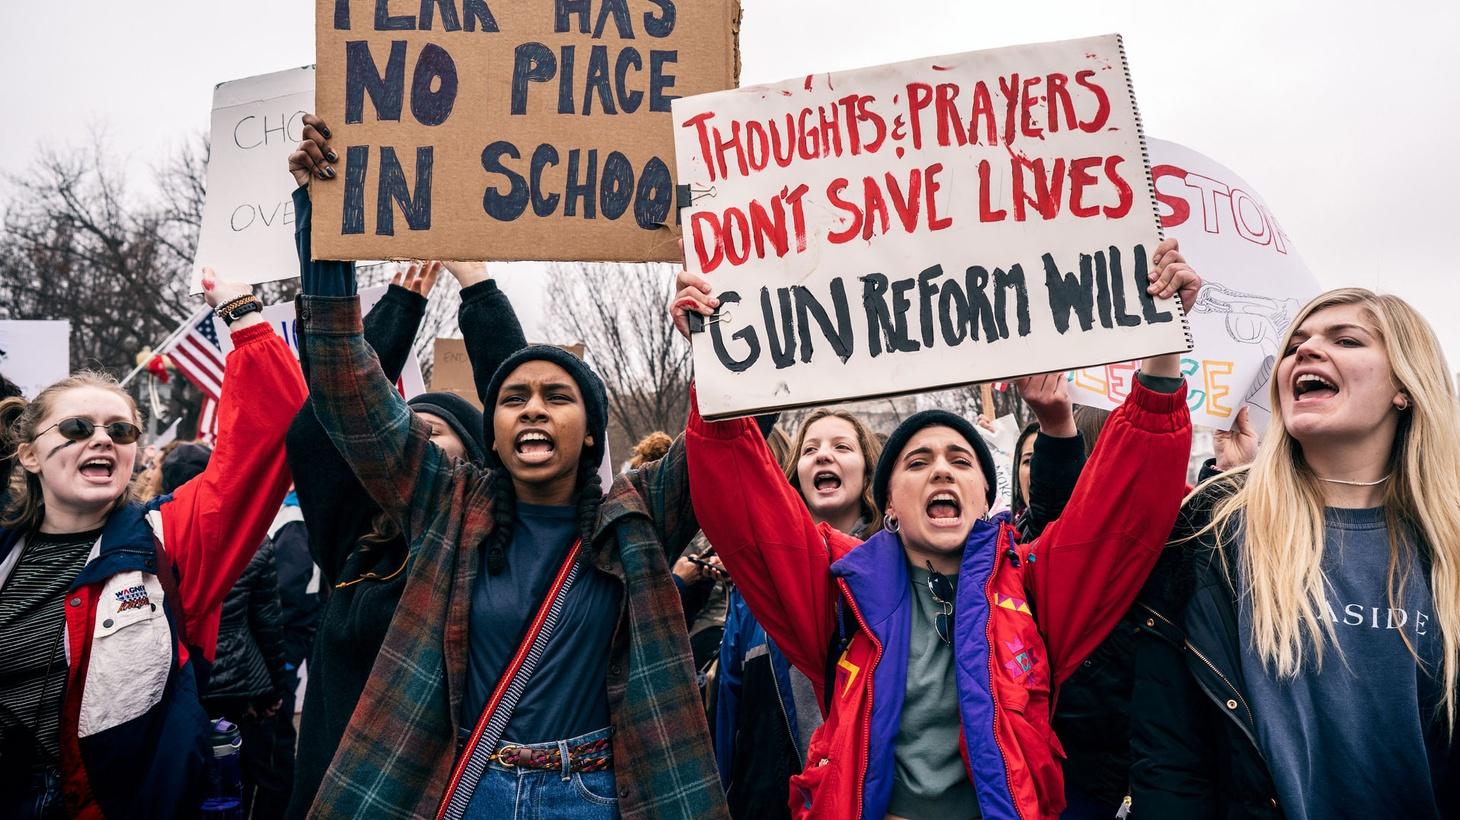 Young people around the country are all fired up after the Parkland shooting. Veteran observers say they're changing the atmosphere of debate about gun control. How realistic are their expectations about one of America's most controversial issues?